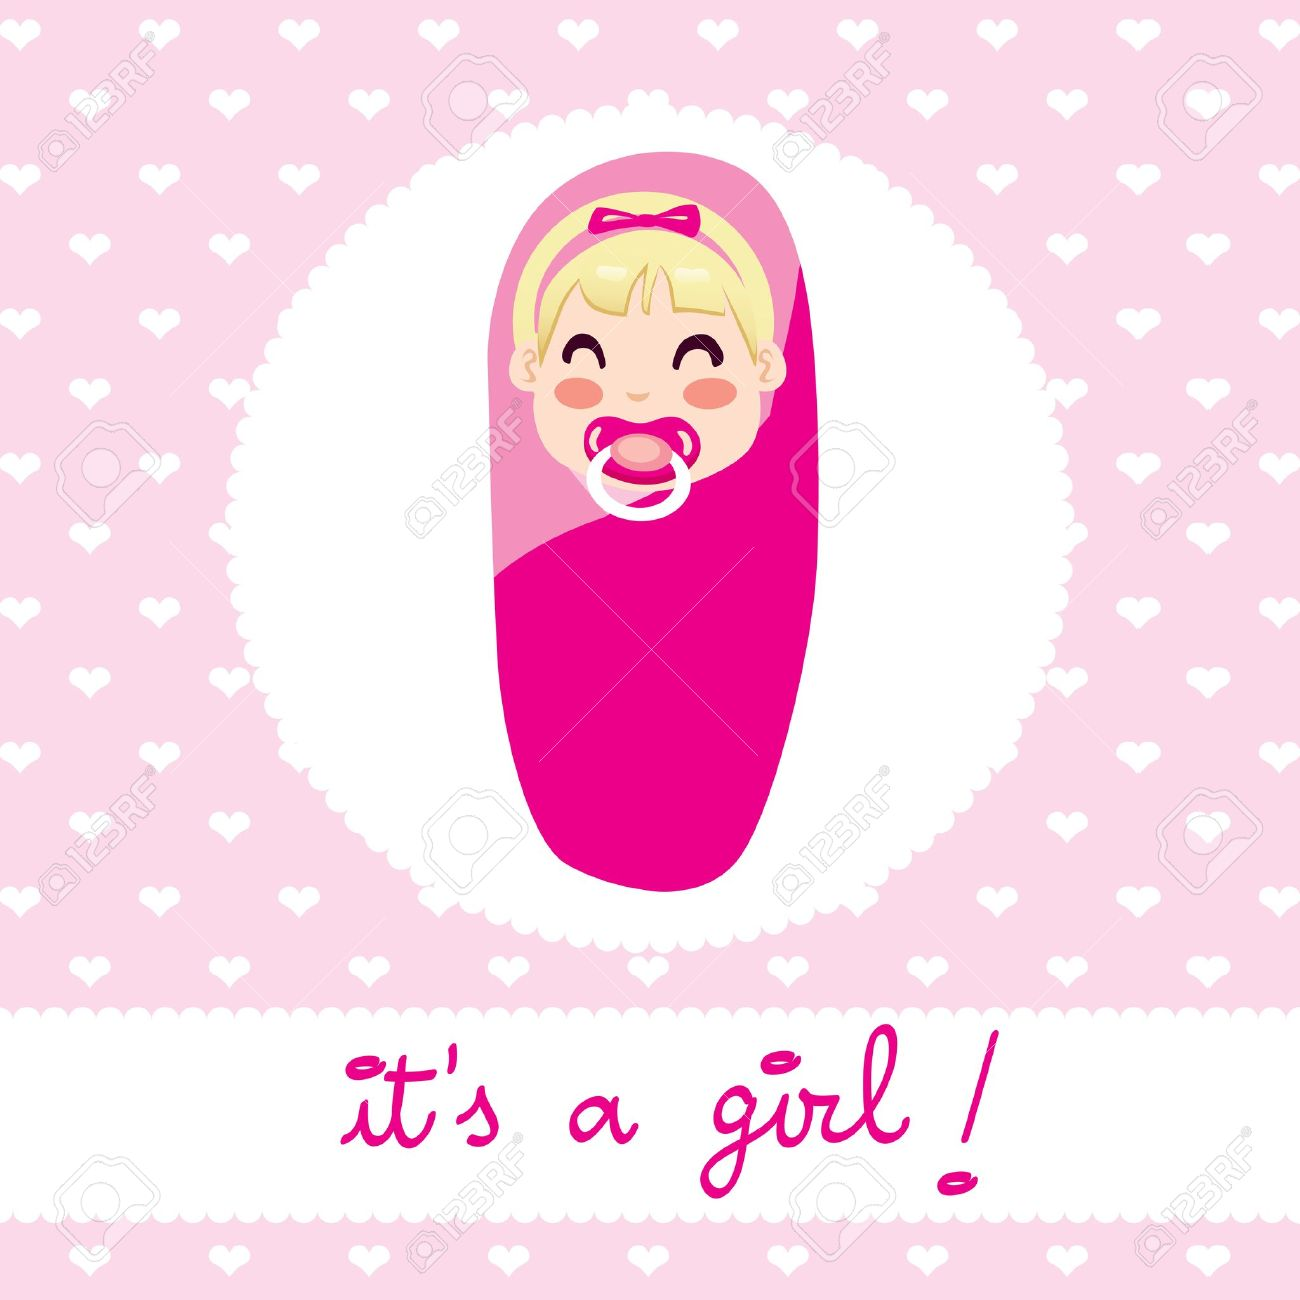 Cute Illustration Design Of Newborn Baby Girl Wrapped In Pink Royalty Free Cliparts Vectors And Stock Illustration Image 17660585